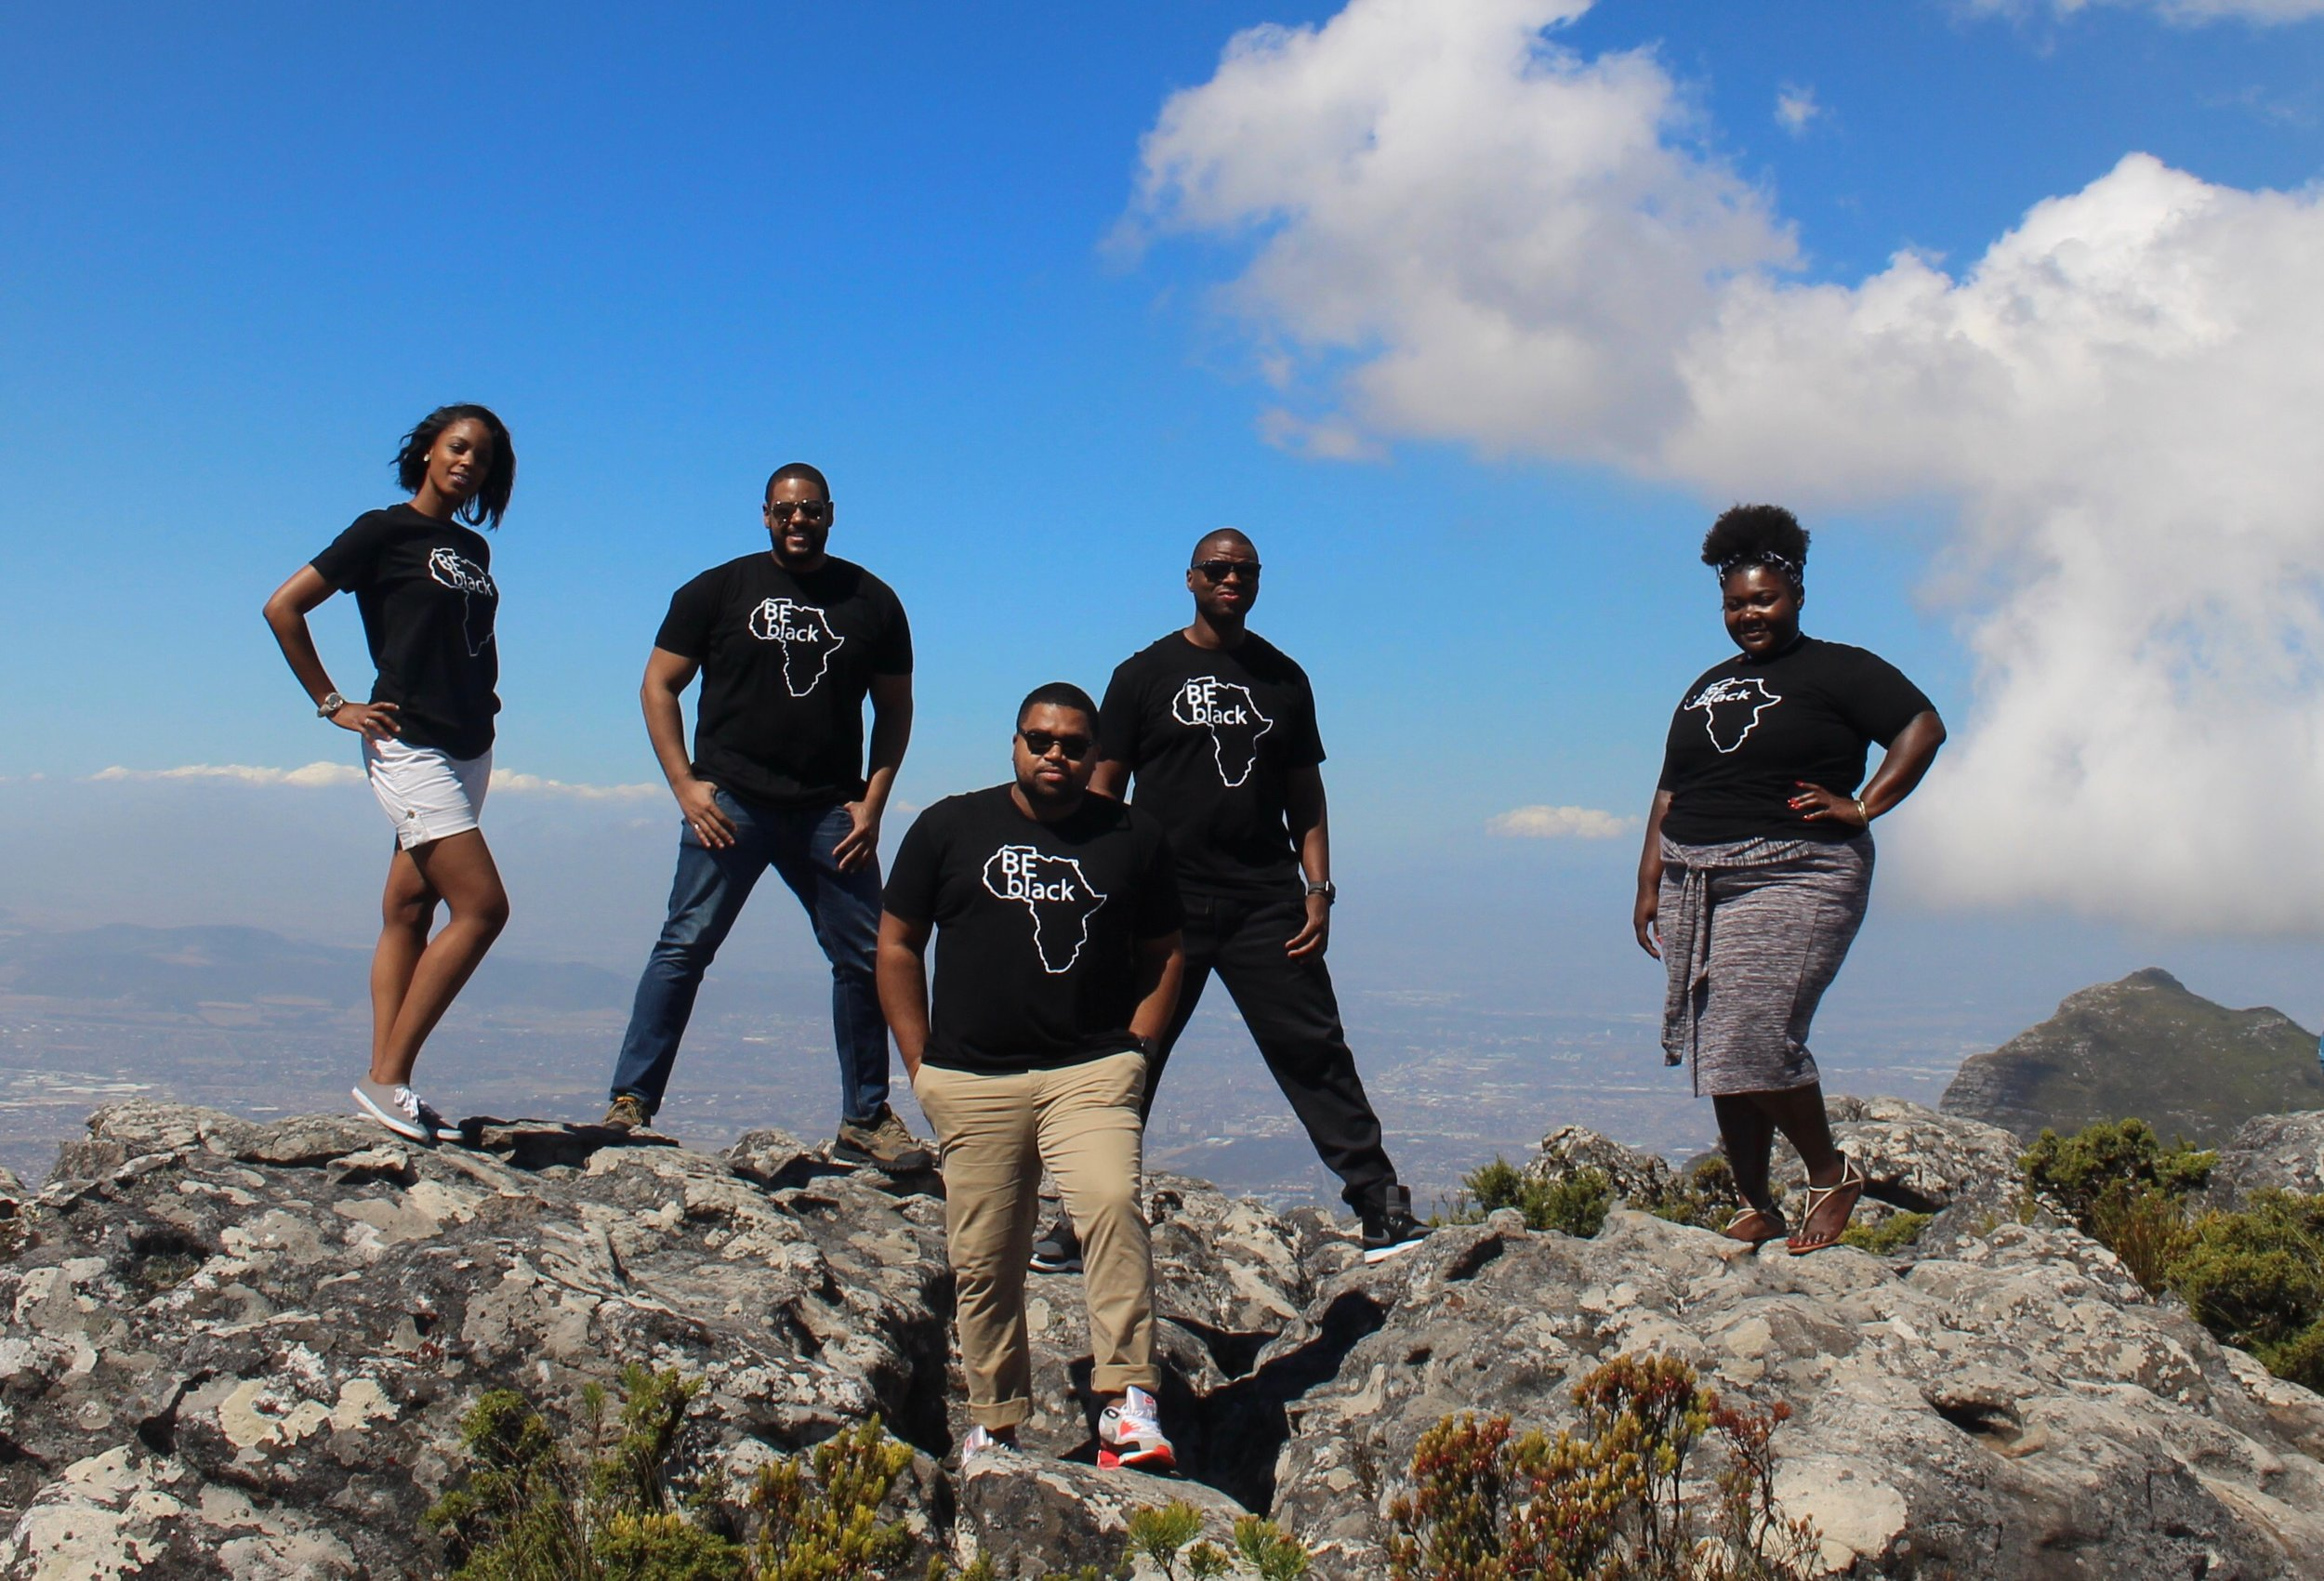 On top of Table Mountain in Cape Town.